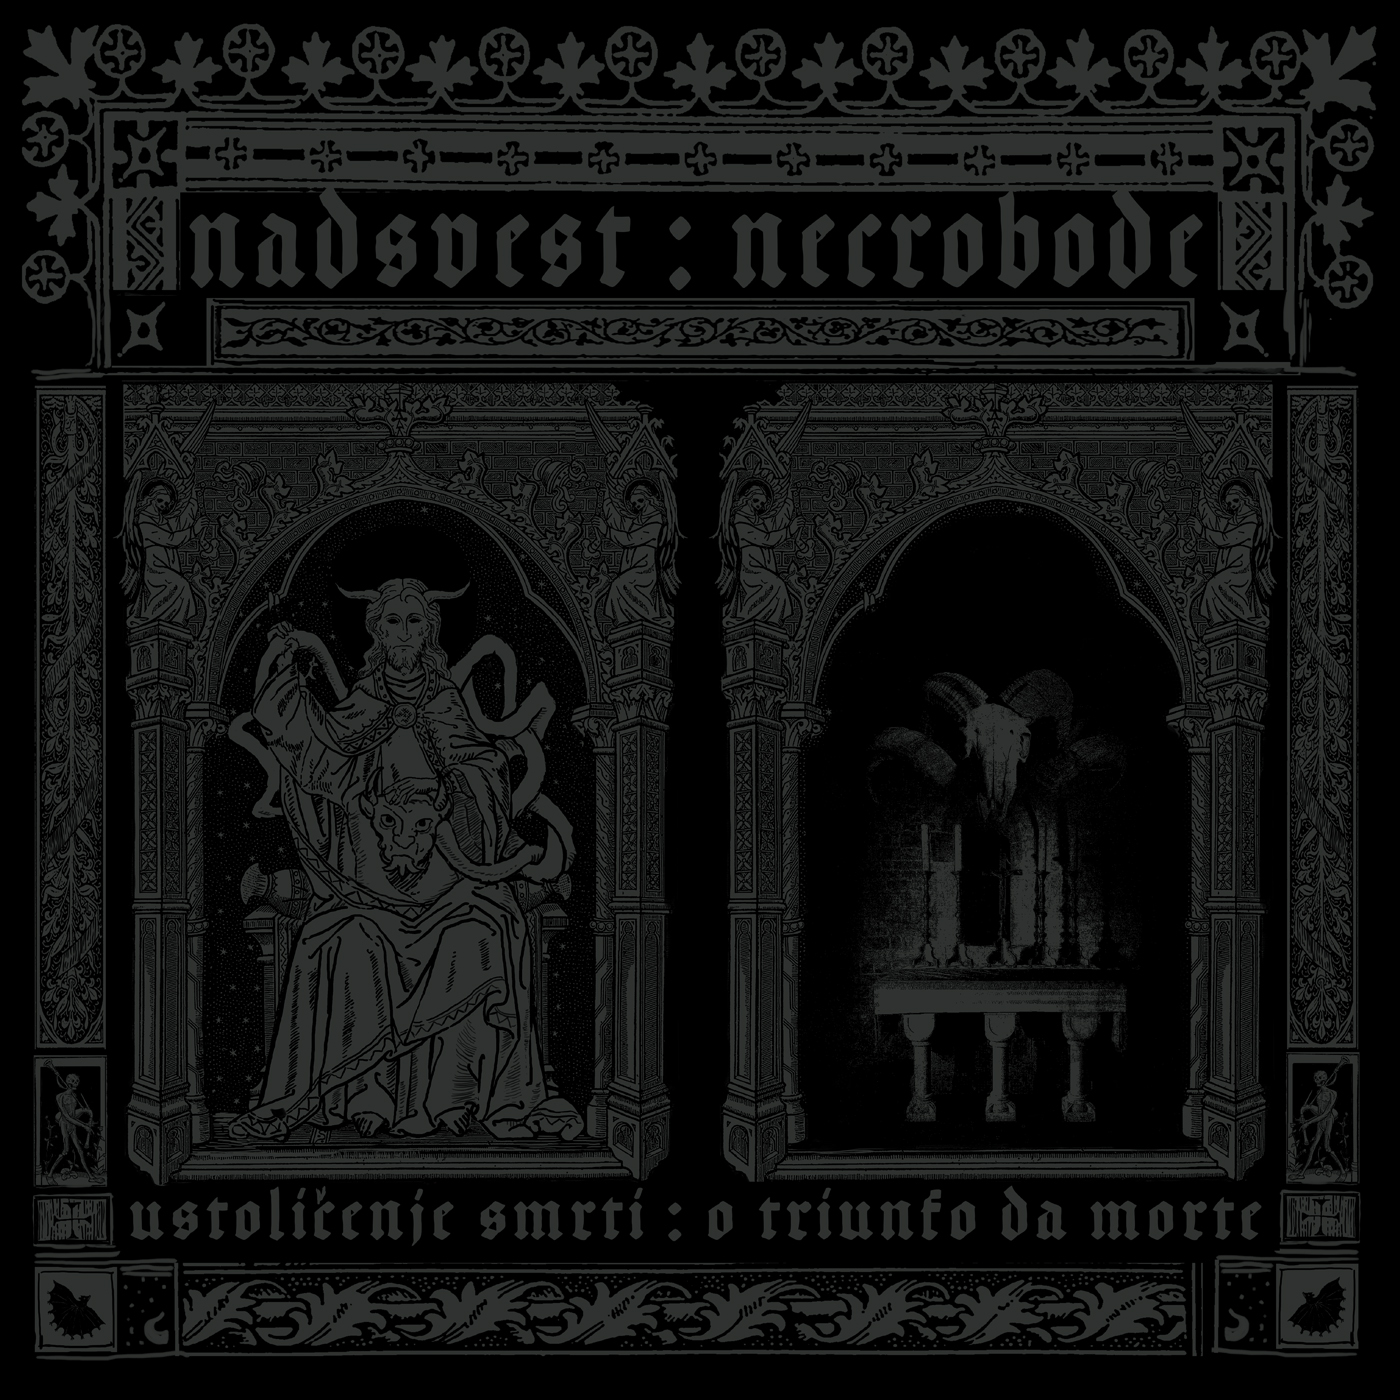 "Nadsvest / Necrobode - Split 12"" MLP - Press Release."